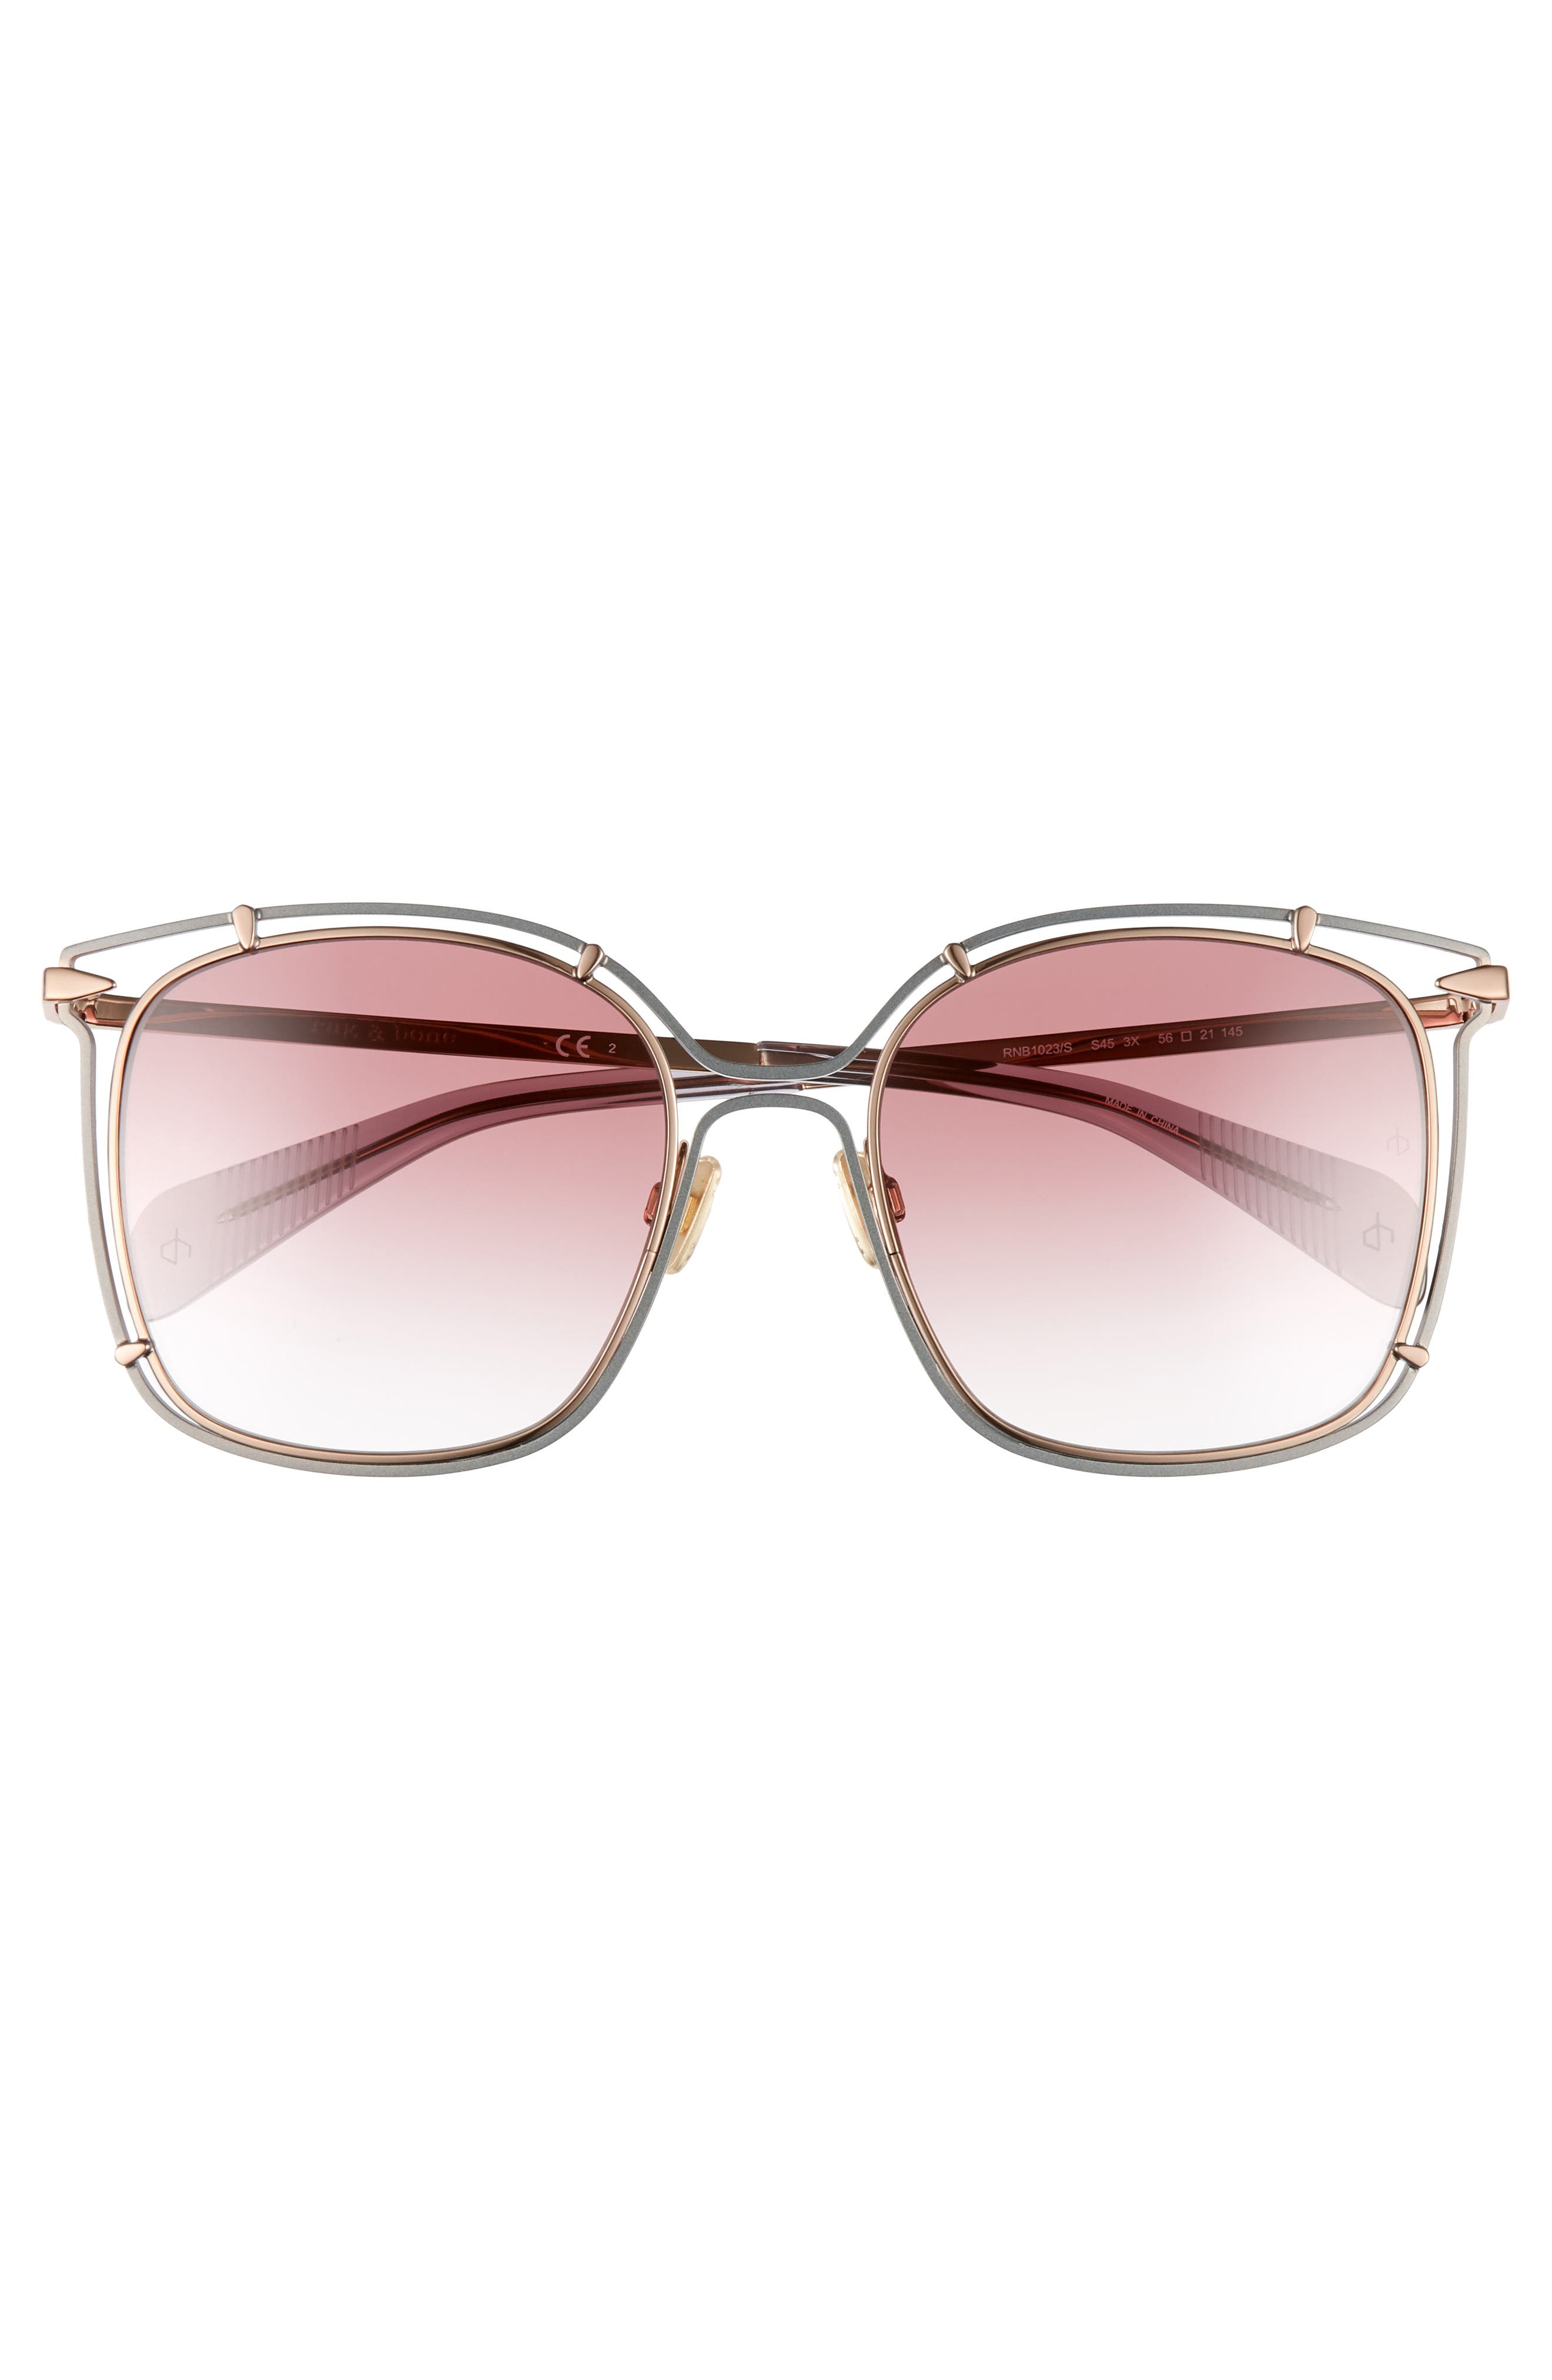 RAG & BONE,                             56mm Gradient Square Sunglasses,                             Alternate thumbnail 3, color,                             GREY/ PINK/ GOLD